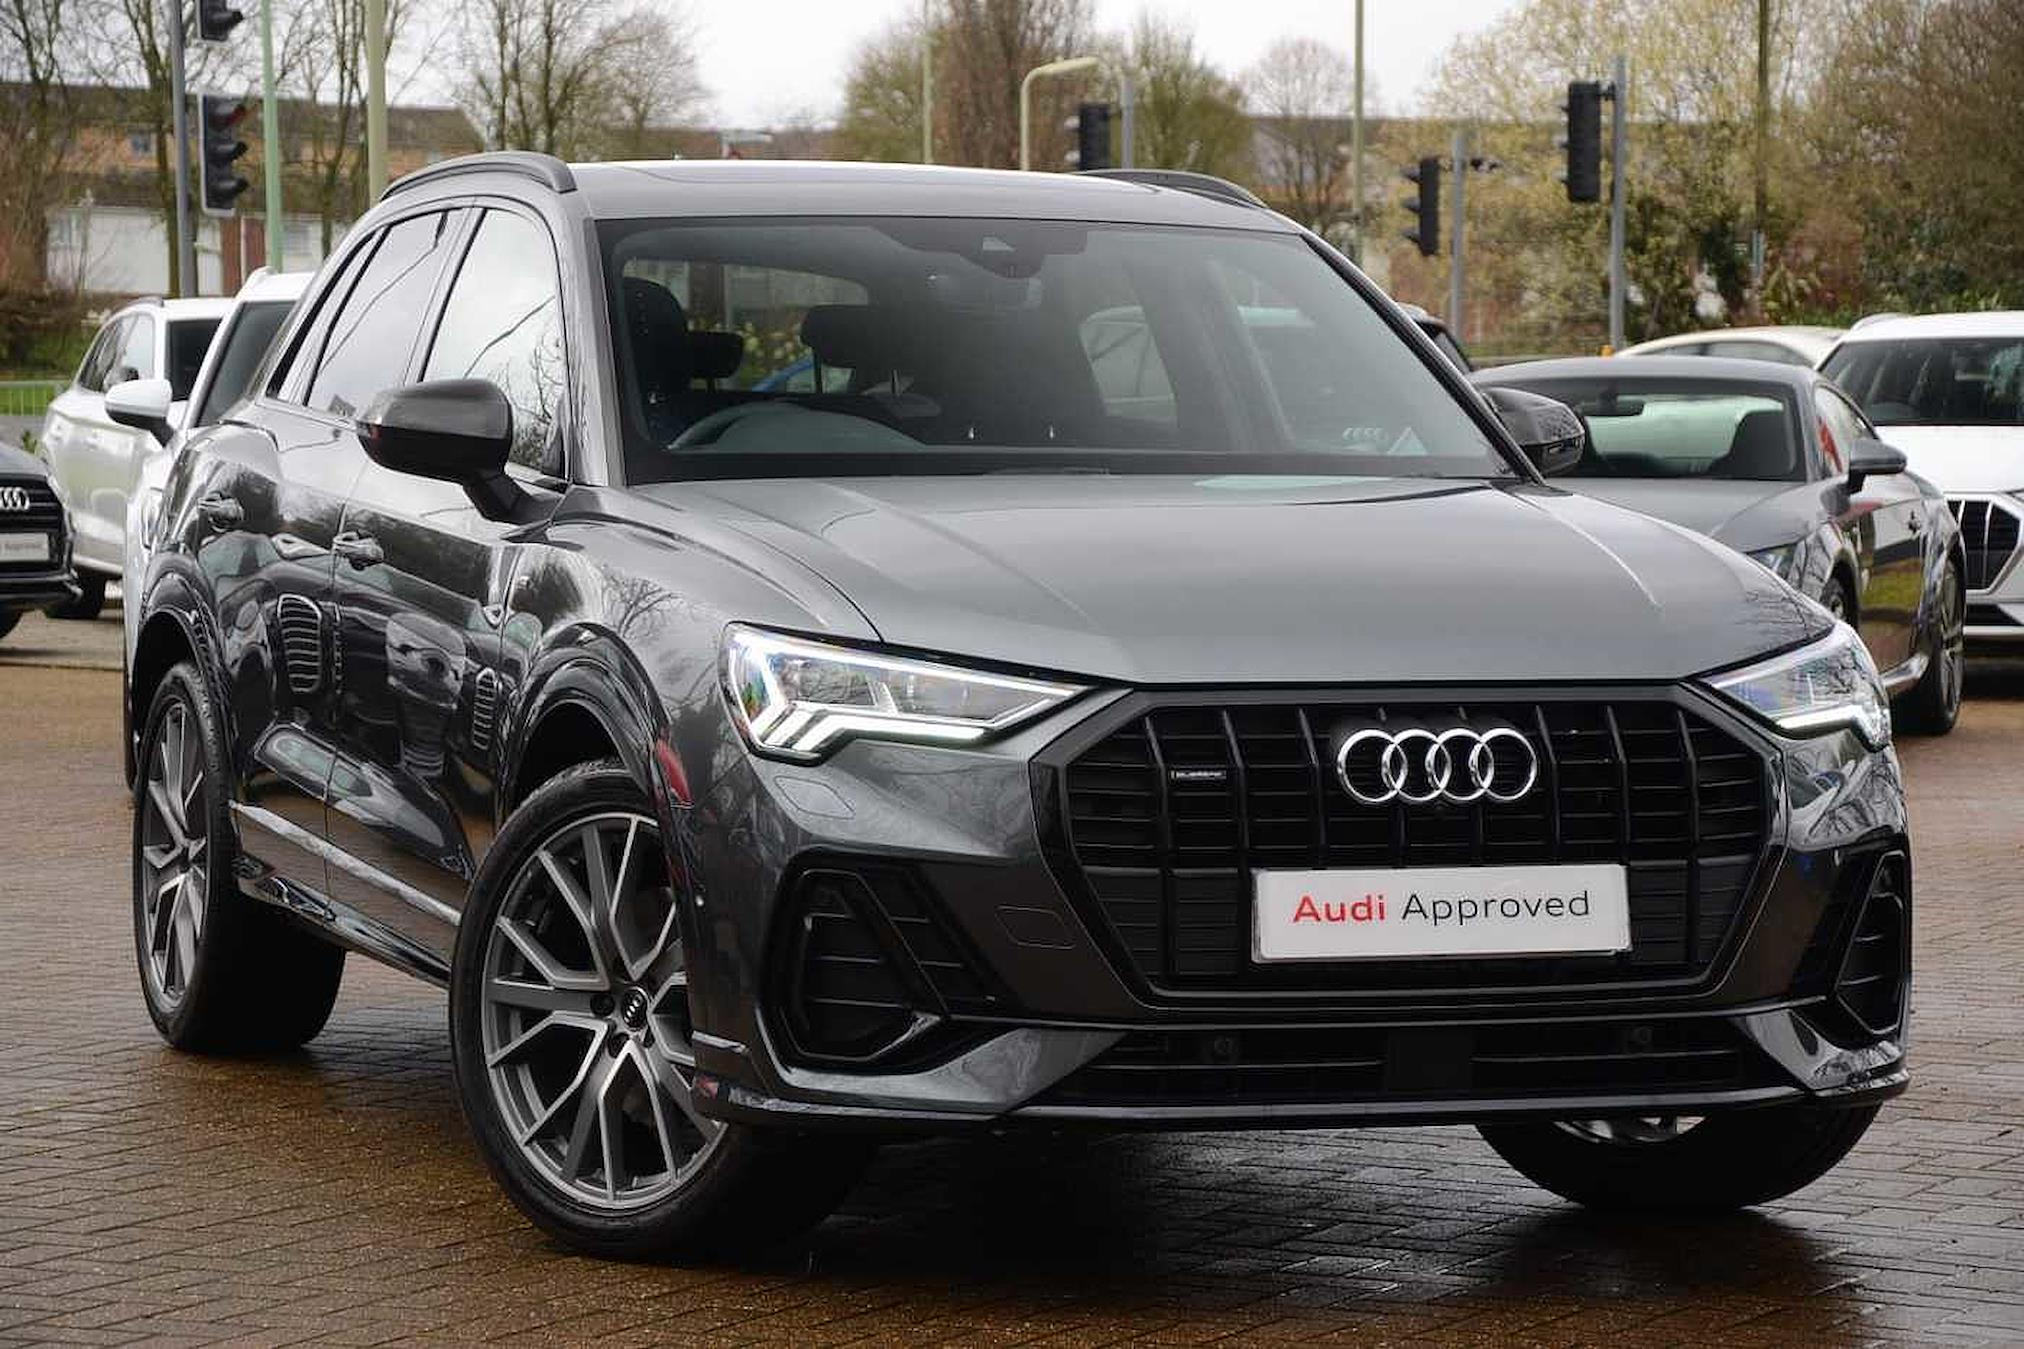 Nearly New Q3 Audi 45 Tfsi Quattro Vorsprung 5dr S Tronic 2020 Lookers